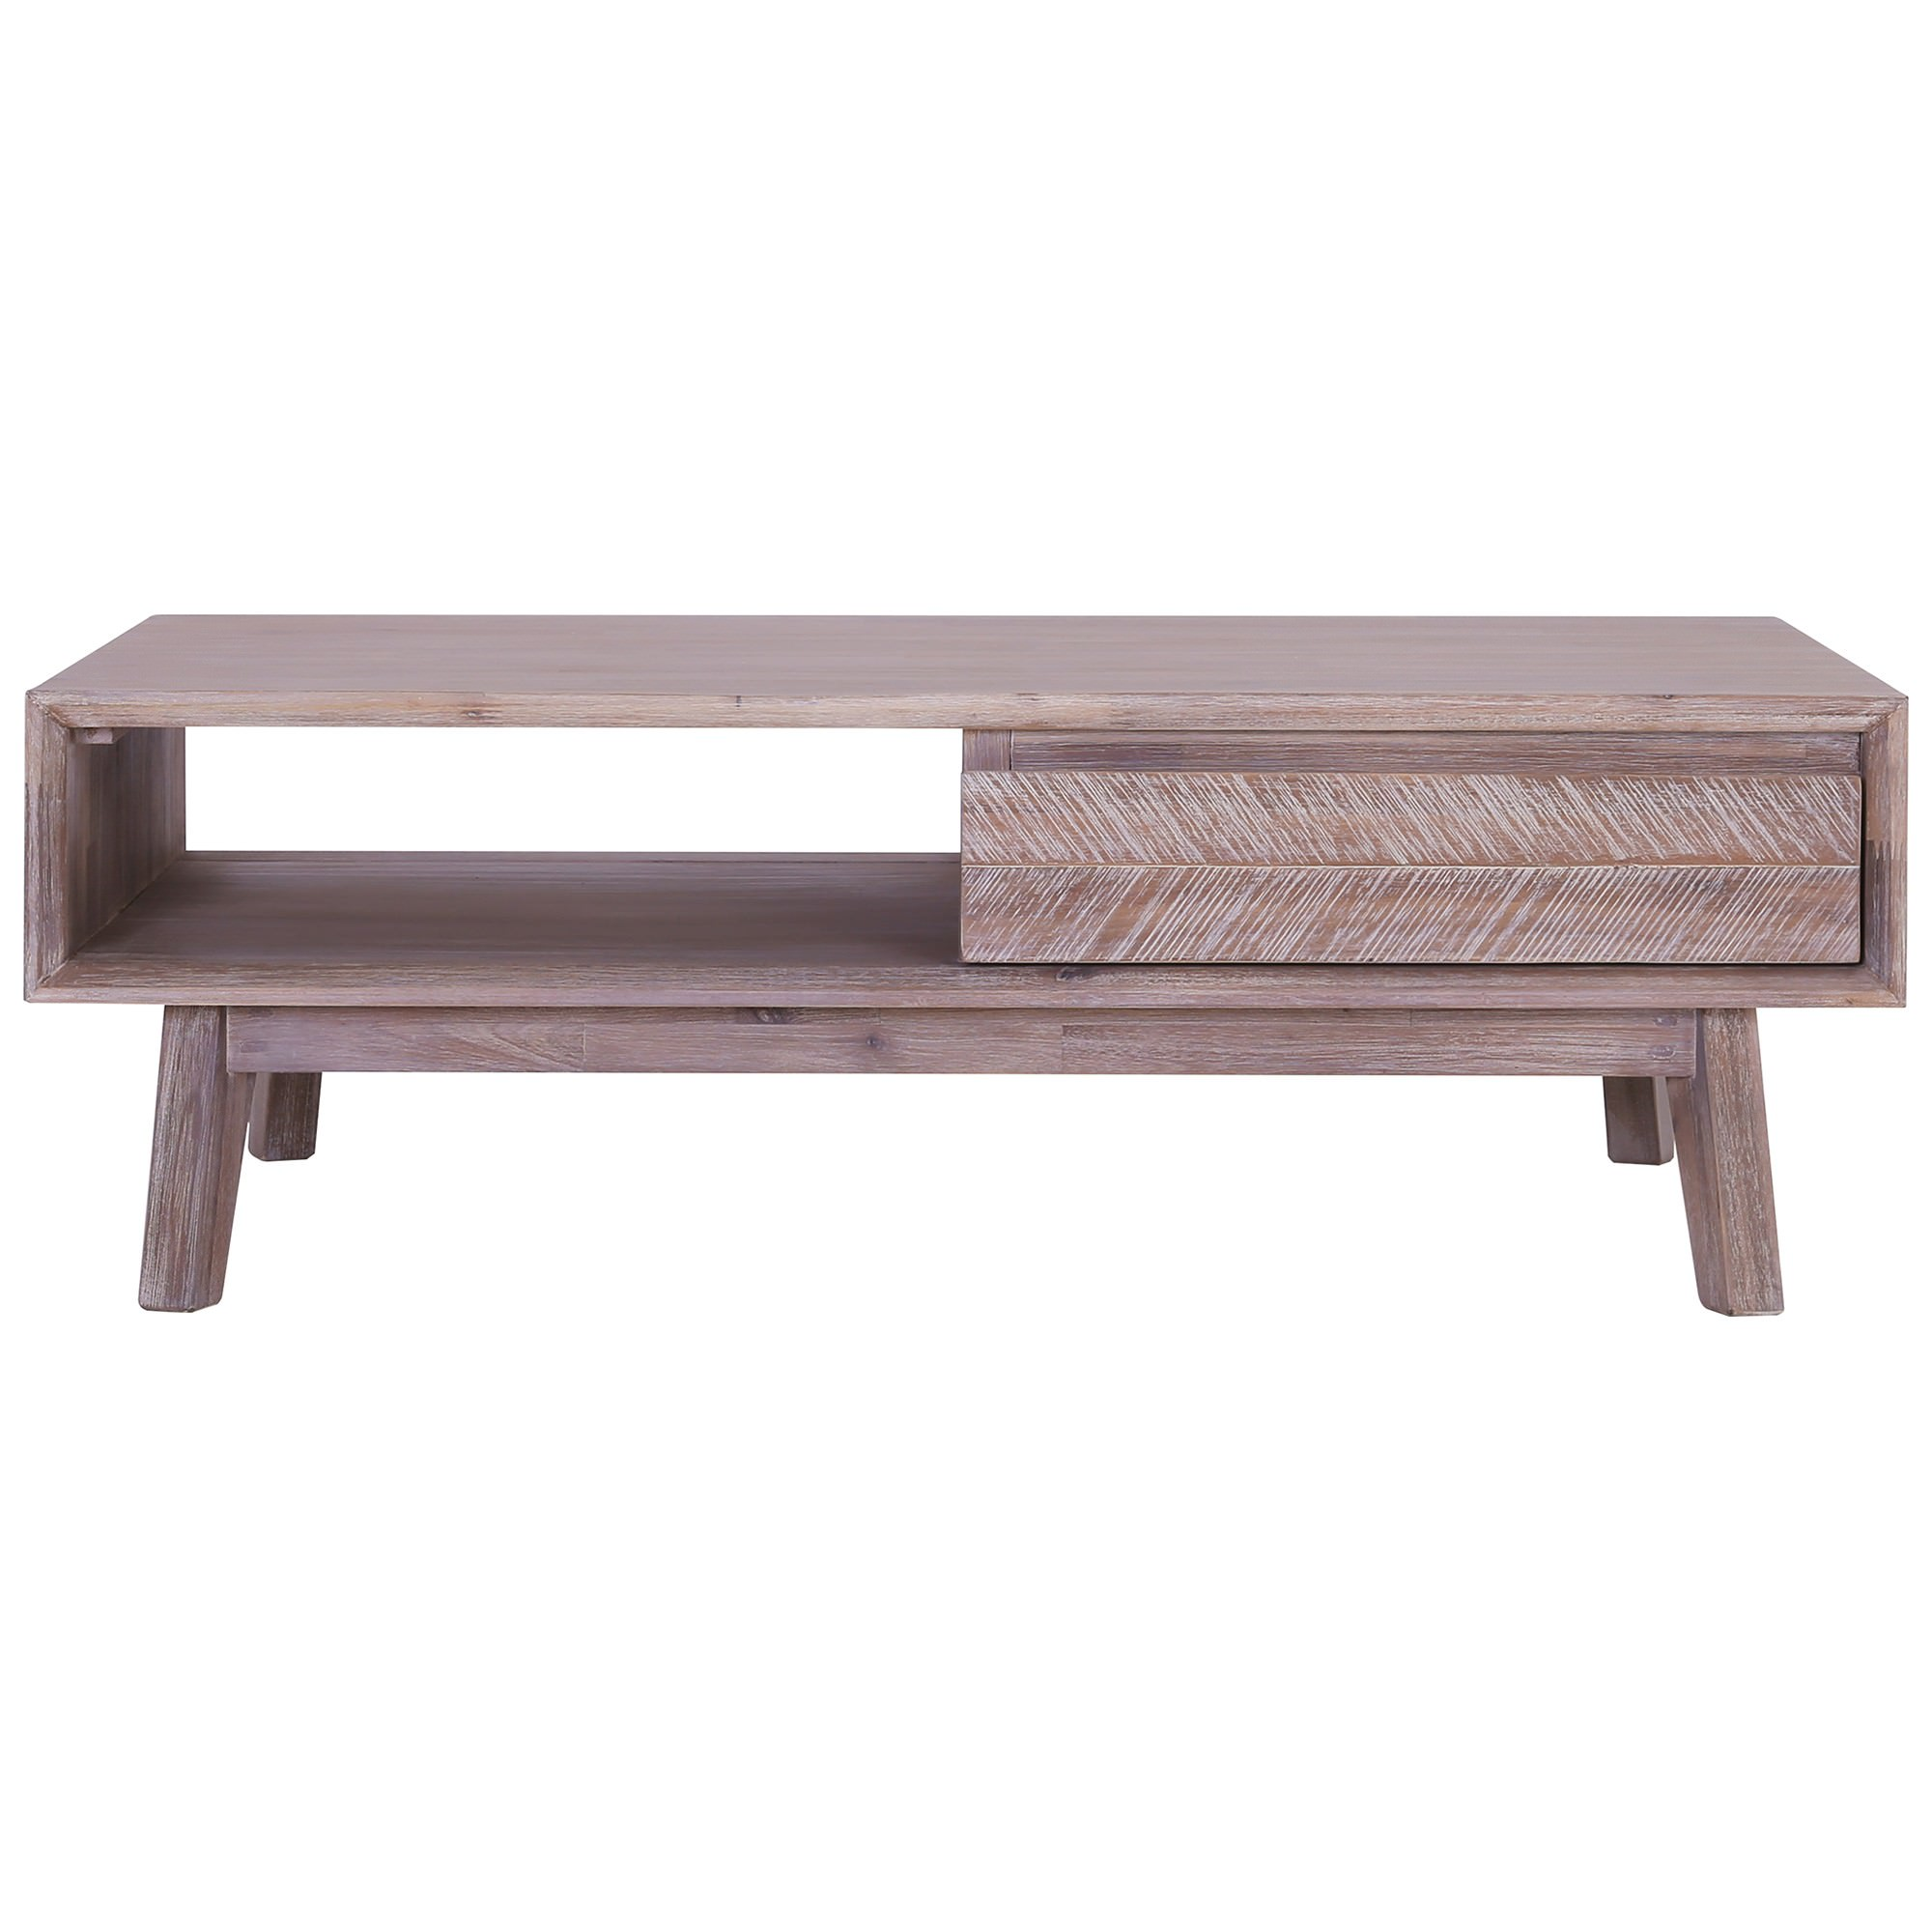 Madrid Commercial Grade Acacia Timber 2 Drawer Coffee Table, 120cm